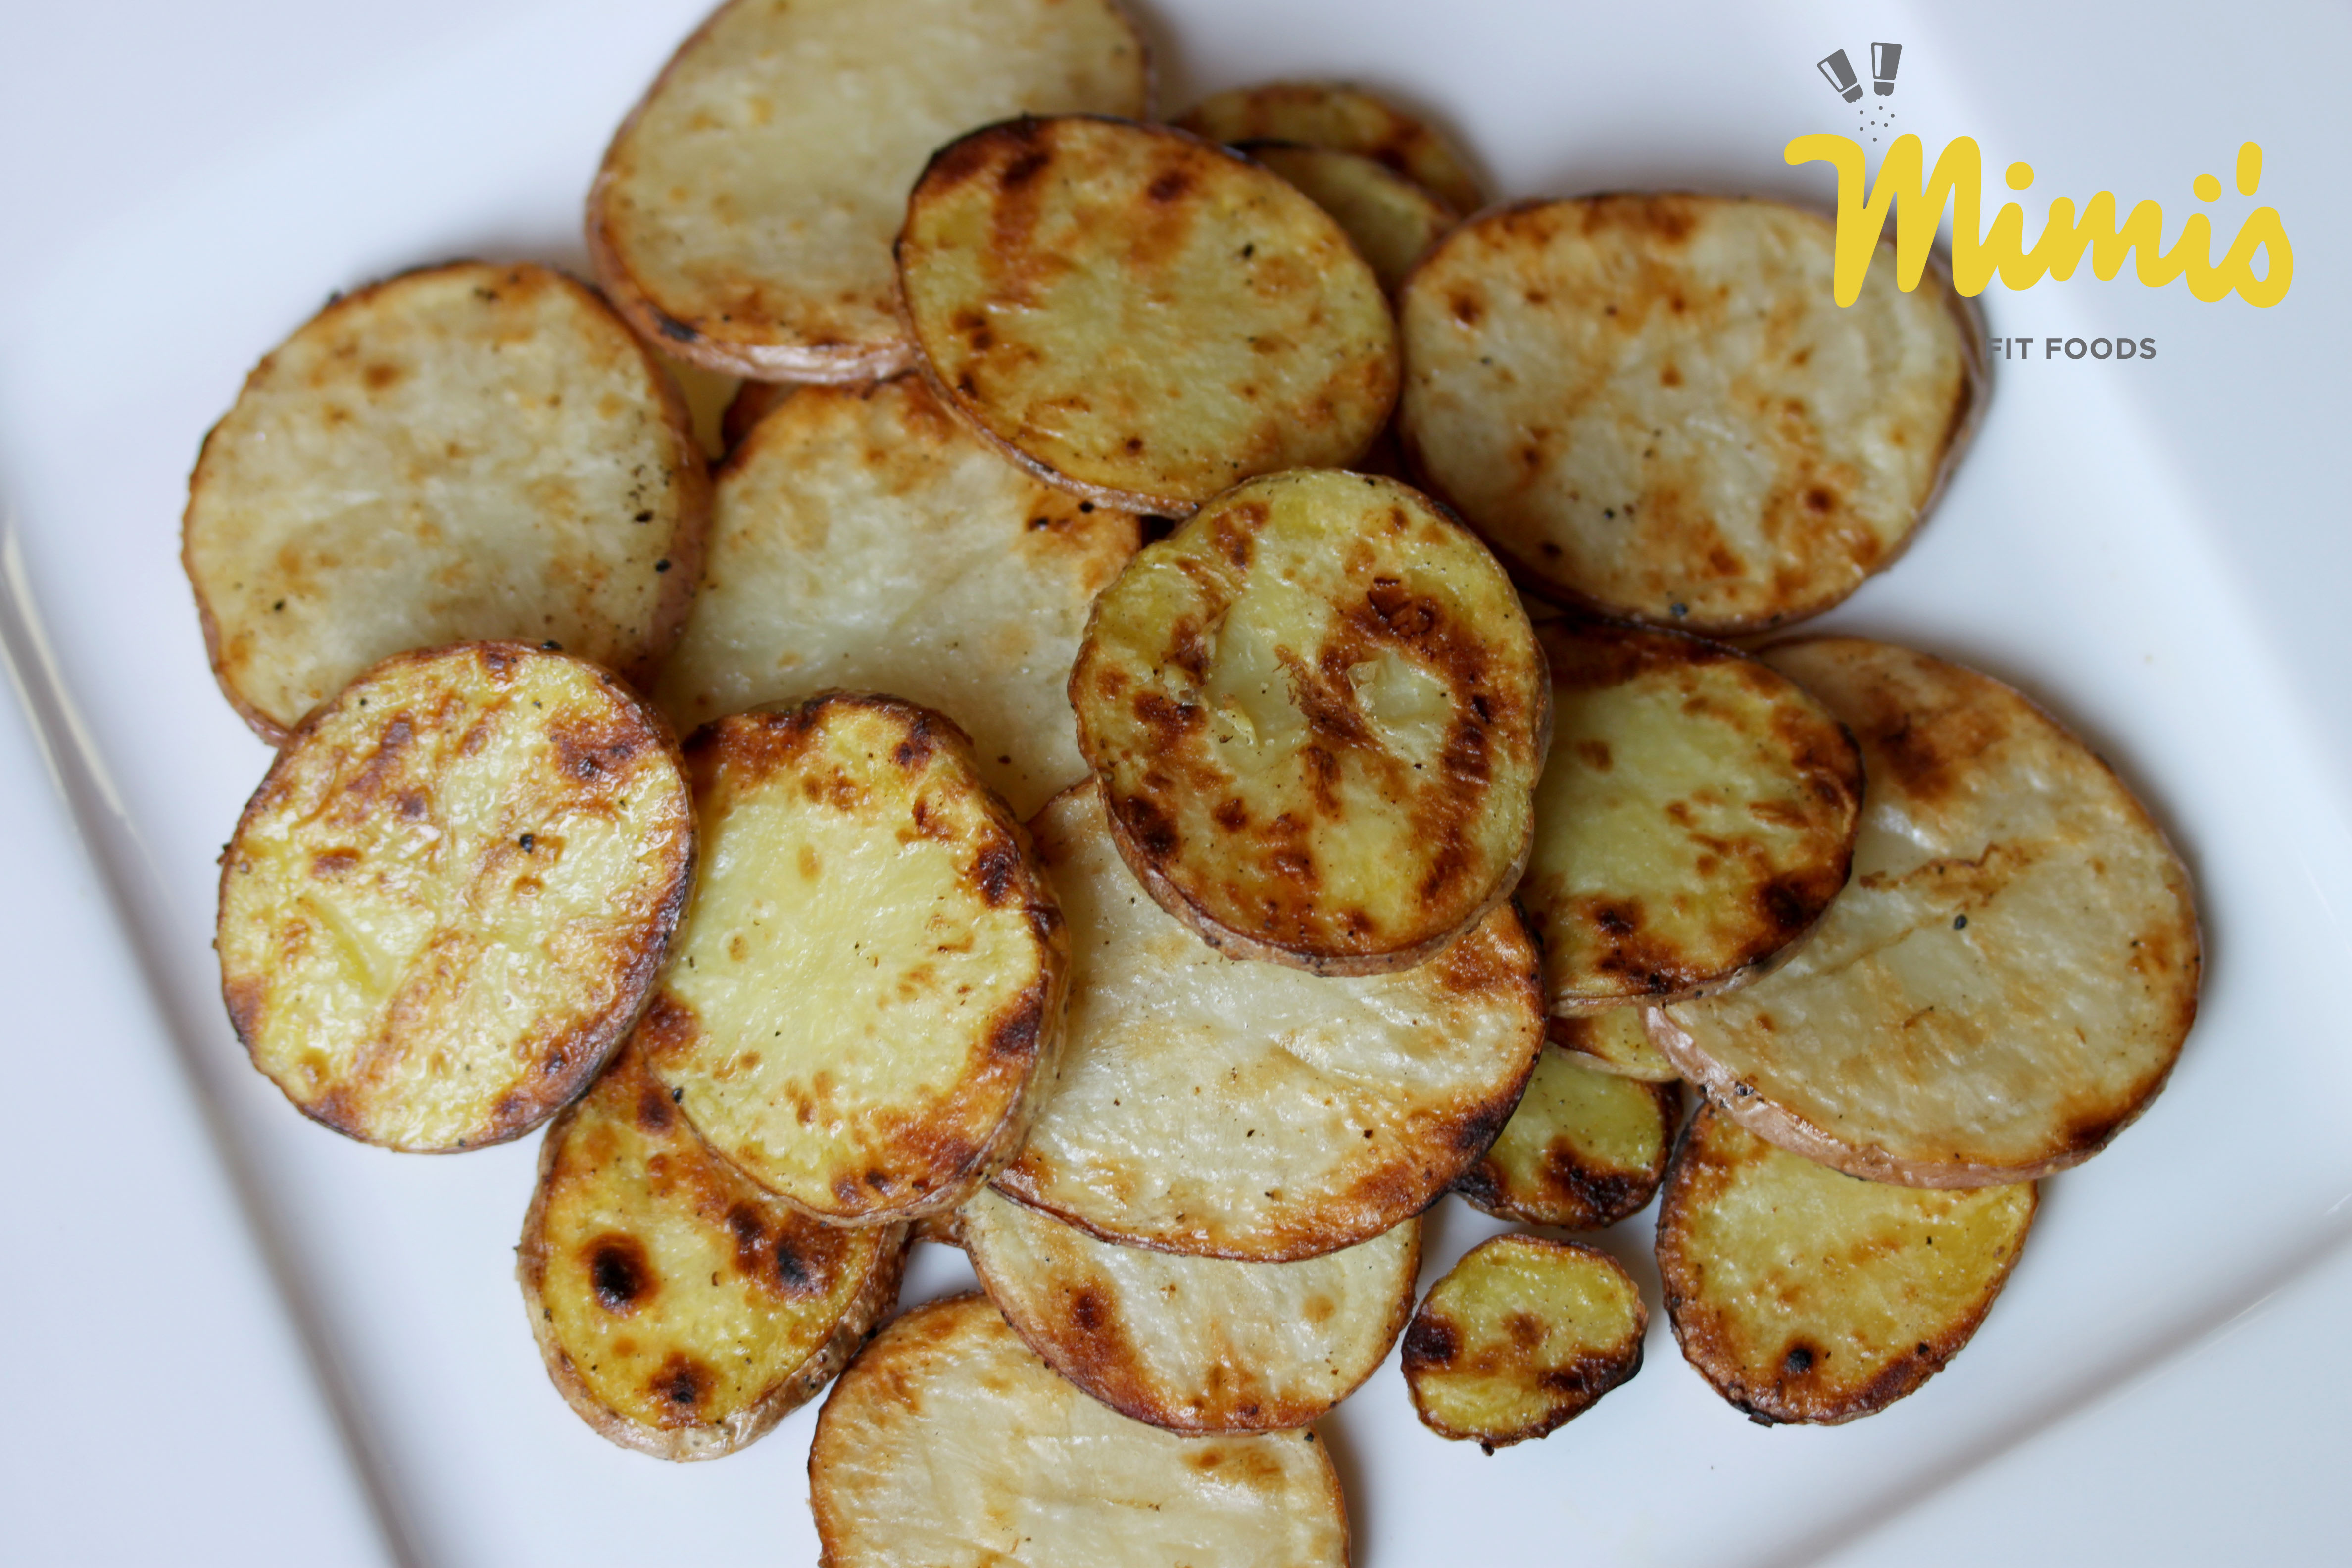 Grilled Potatoes - Mimi's Fit Foods